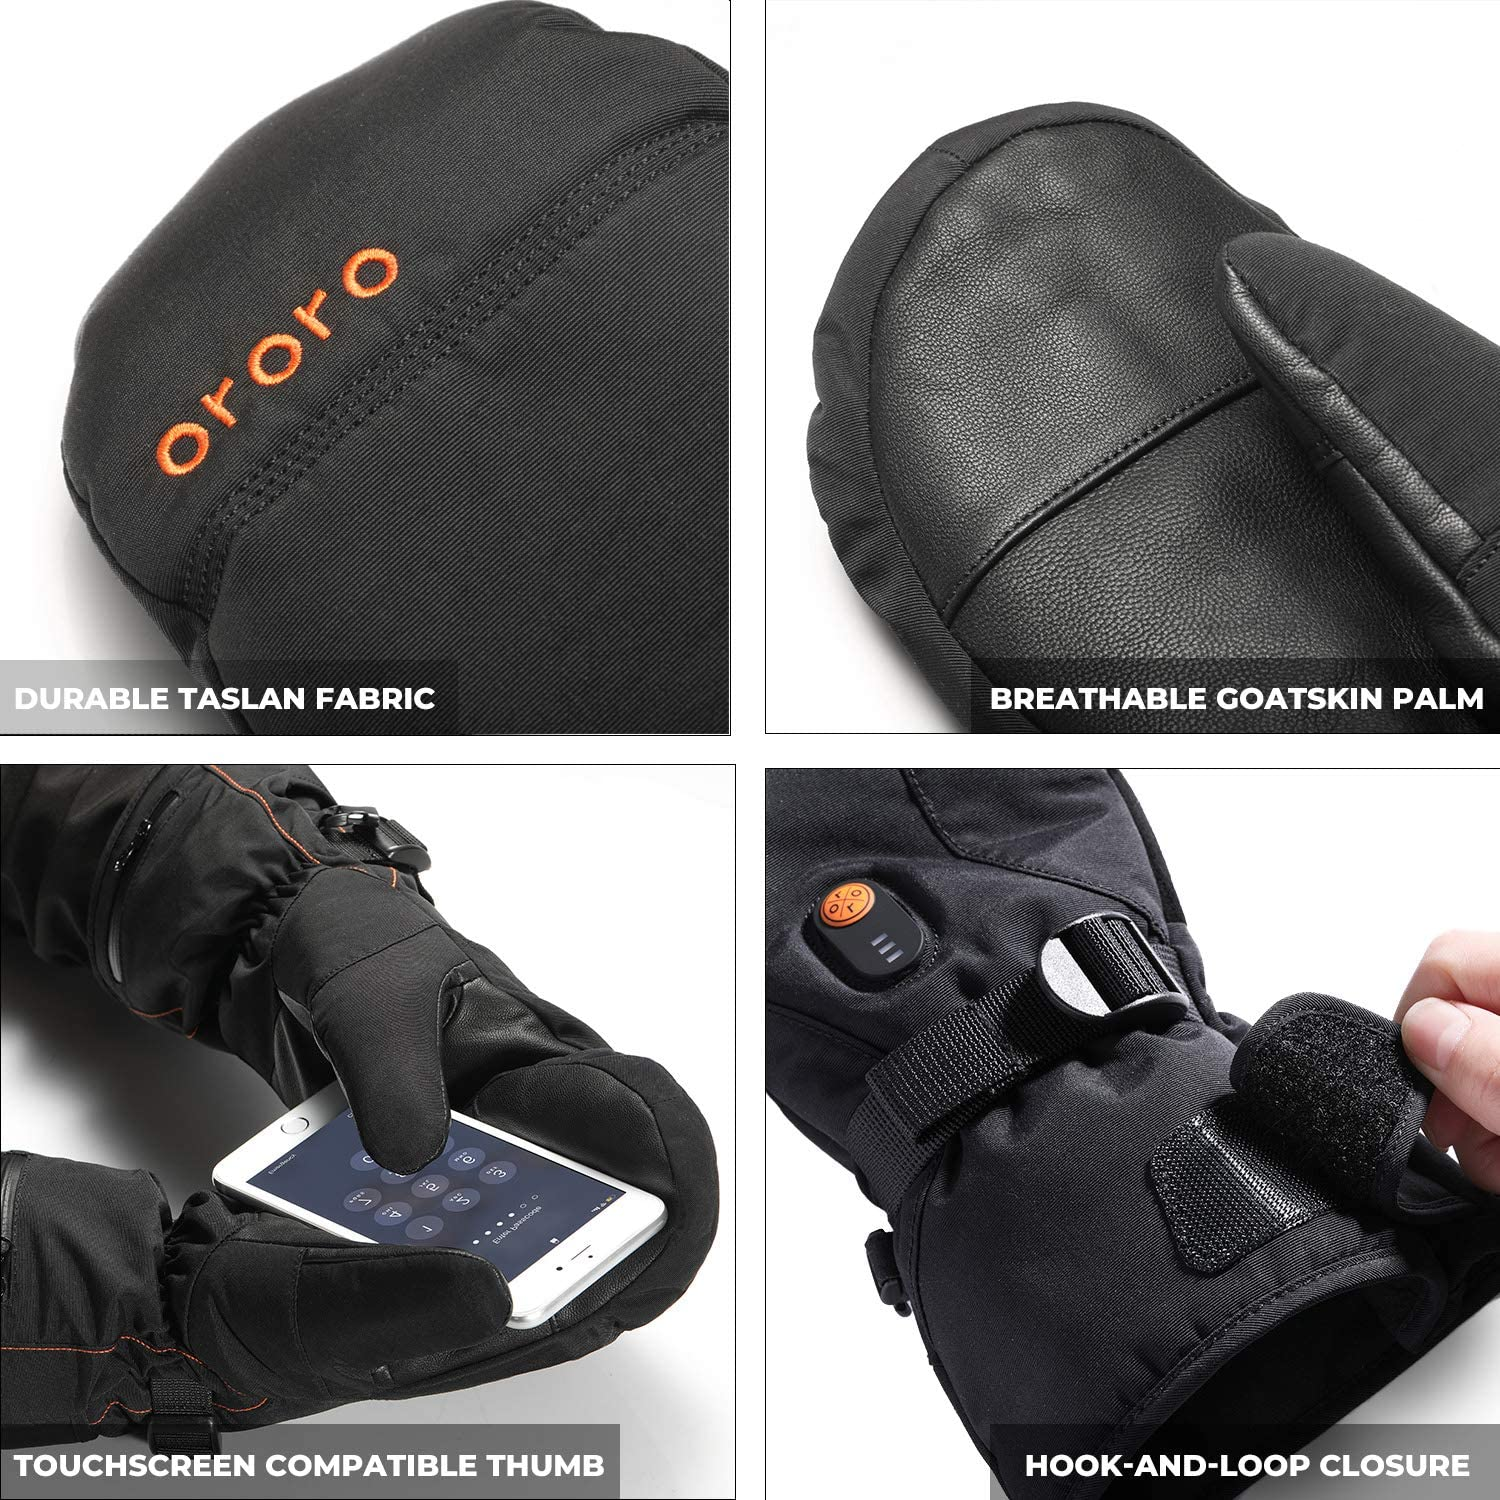 ORORO Heated Mittens for Women and Men, Rechargeable Heated Gloves for Skiing Hiking and Arthritic Hands